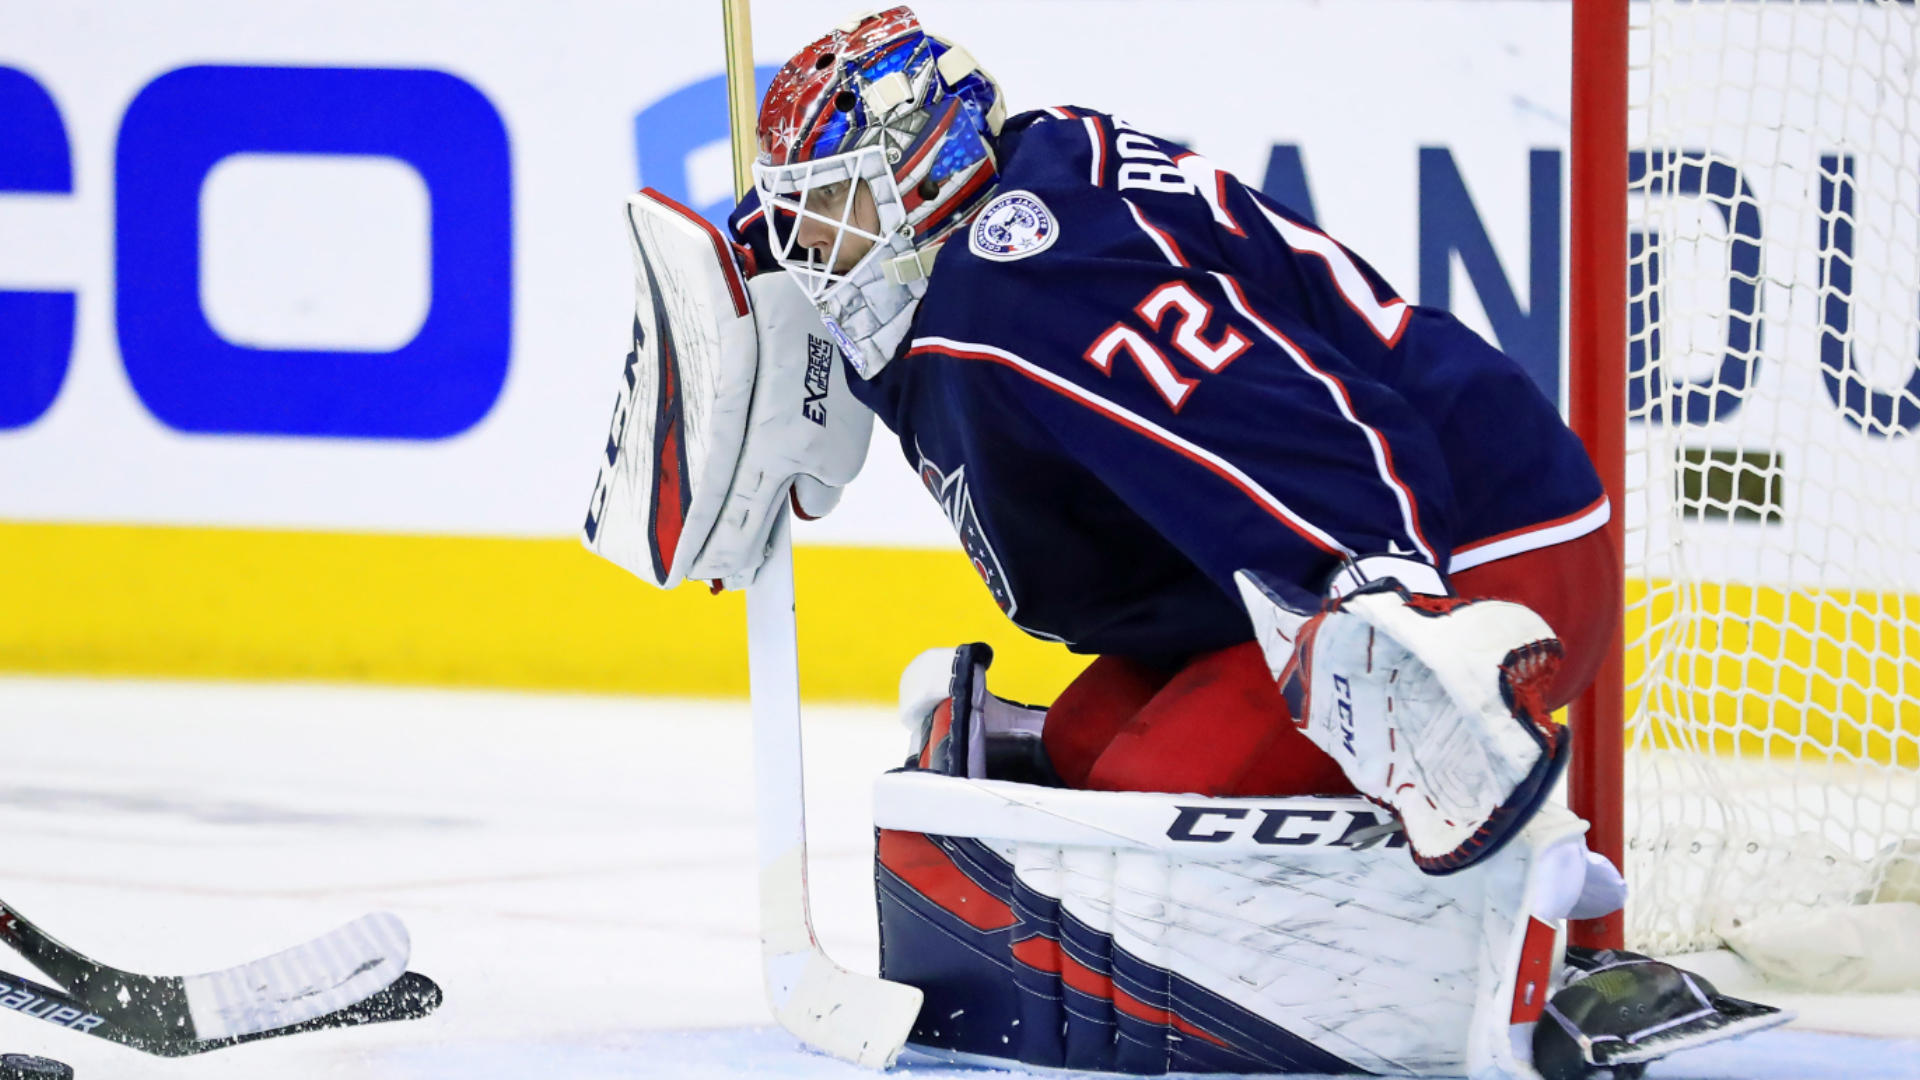 Stanley Cup Playoffs results: Blue Jackets and Islanders sweep, Jets pull even in OT, Golden Knights roll again